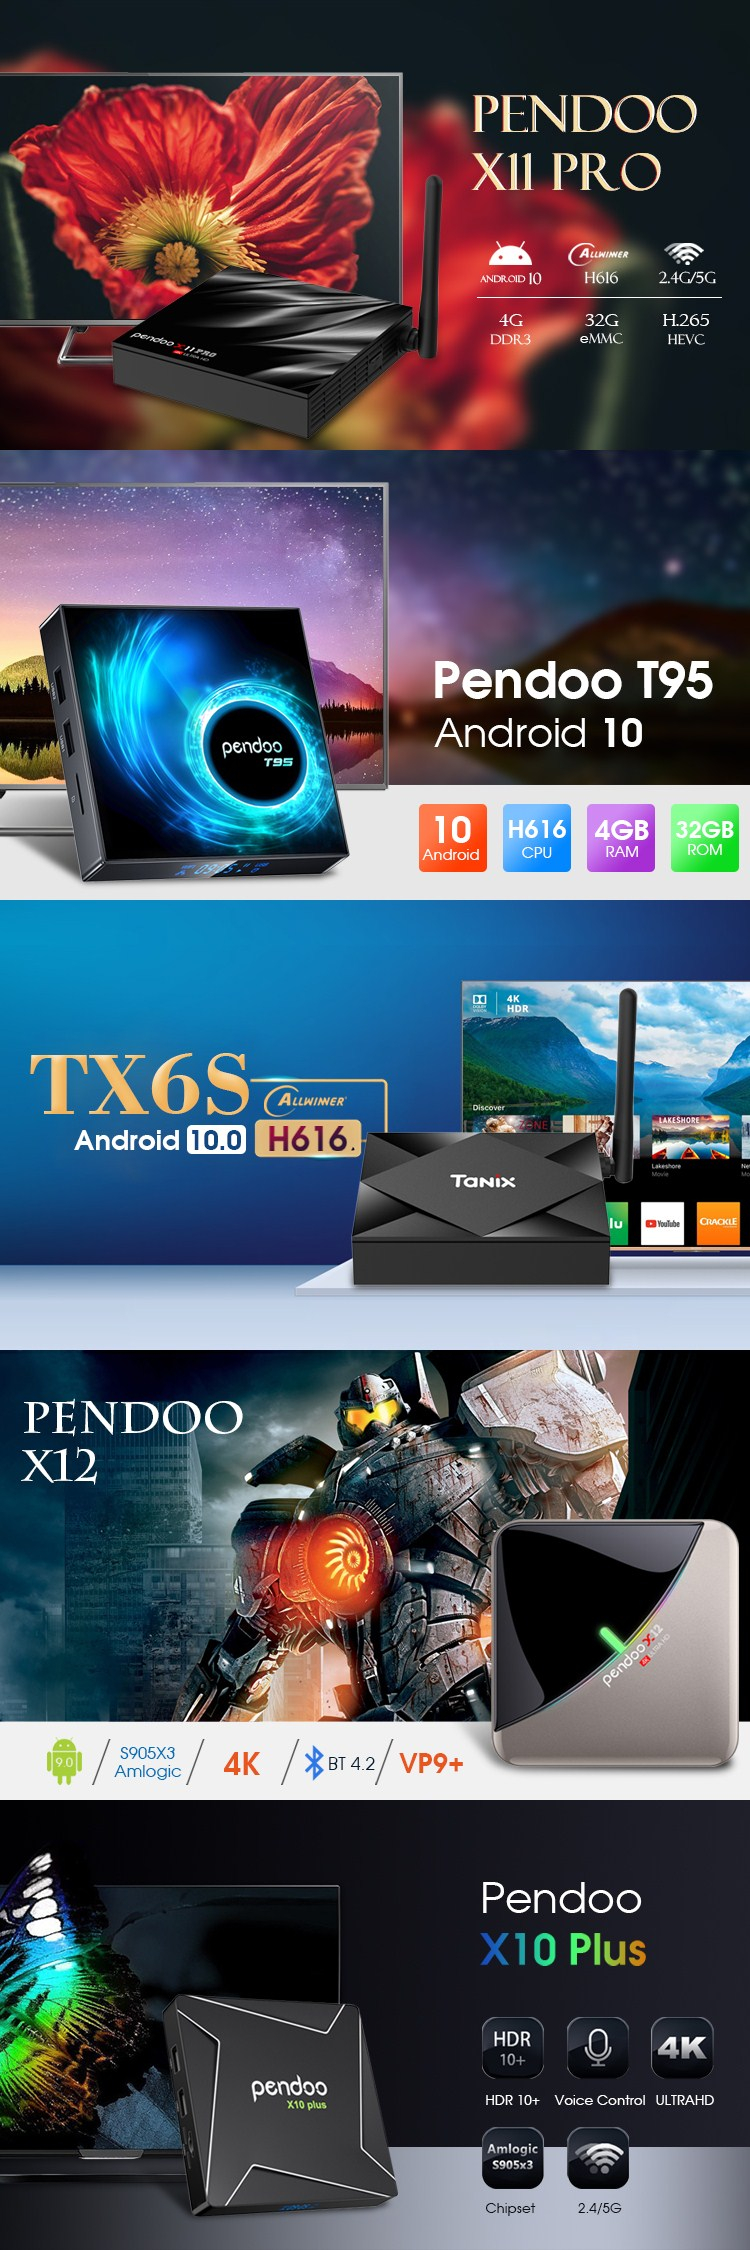 4gb 64gb Tx6s H616 Ultra Hd Provided Android Dongle Satellite Receiver Smart Tv Box 4k